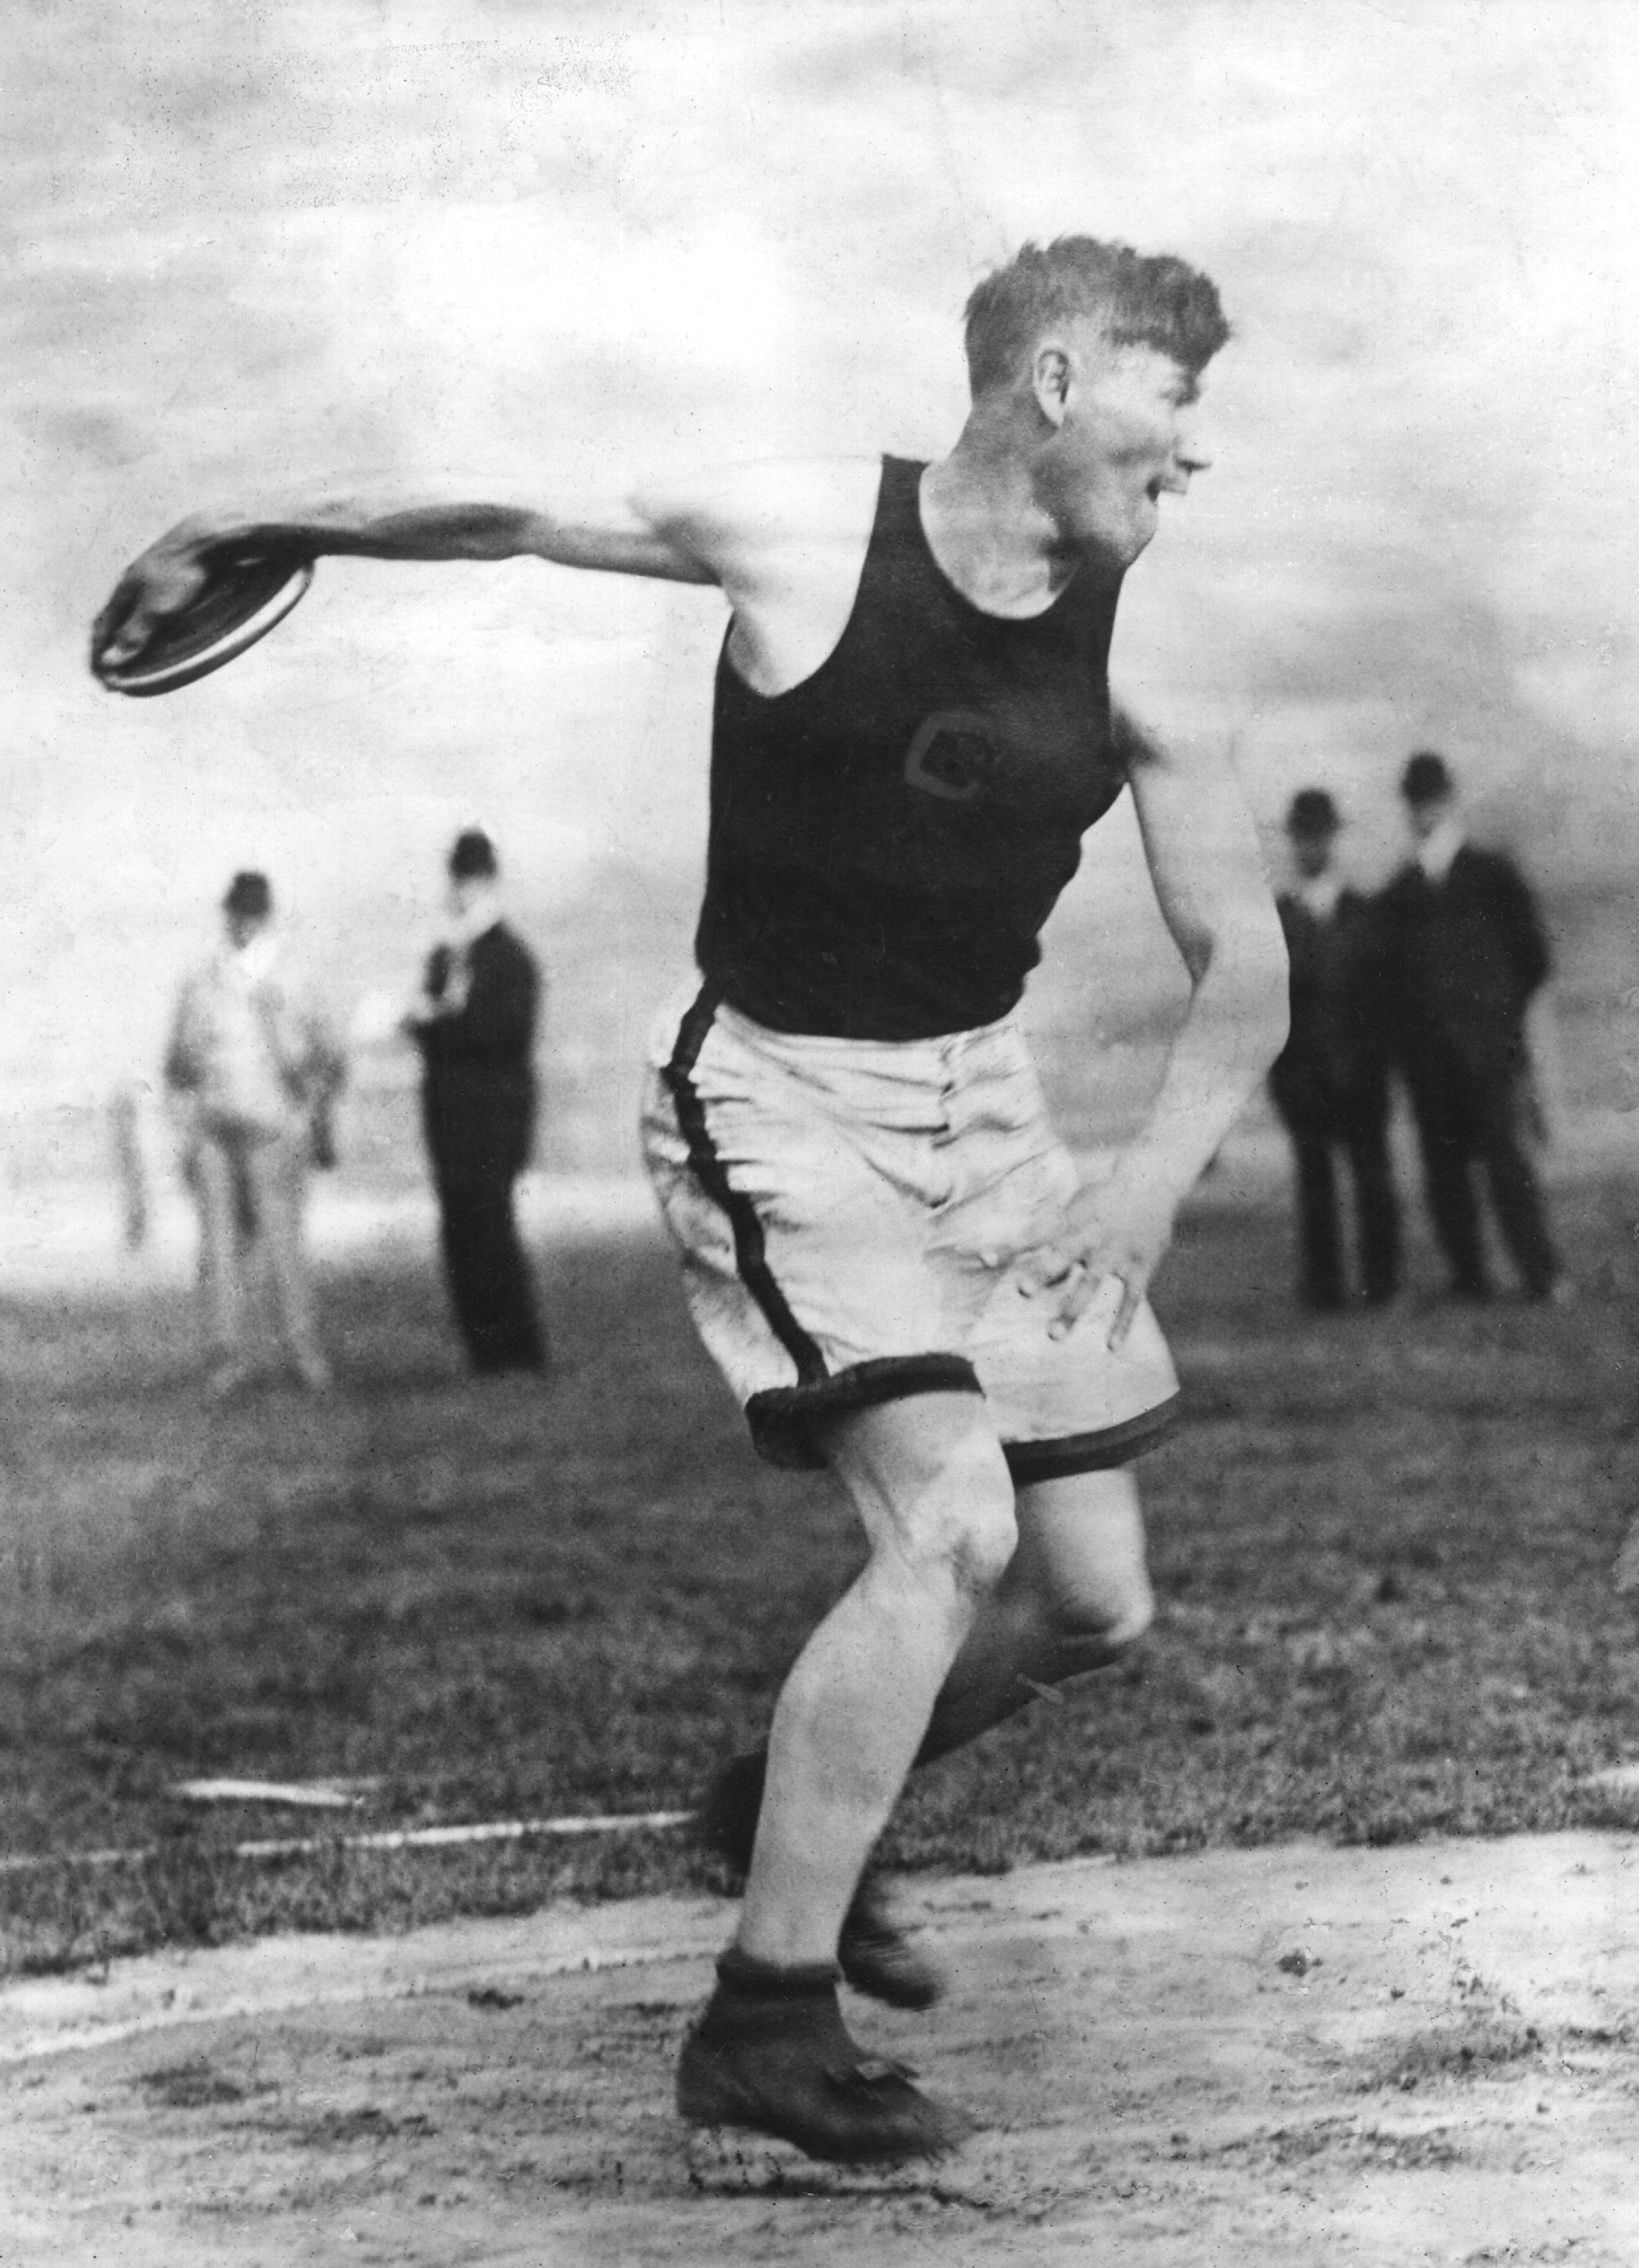 American footballer and athlete Jim Thorpe (1888 - 1953) competing for Carlisle Indian Industrial School at the US Olympic trials in Celtic Park, New York, 18th May 1912.